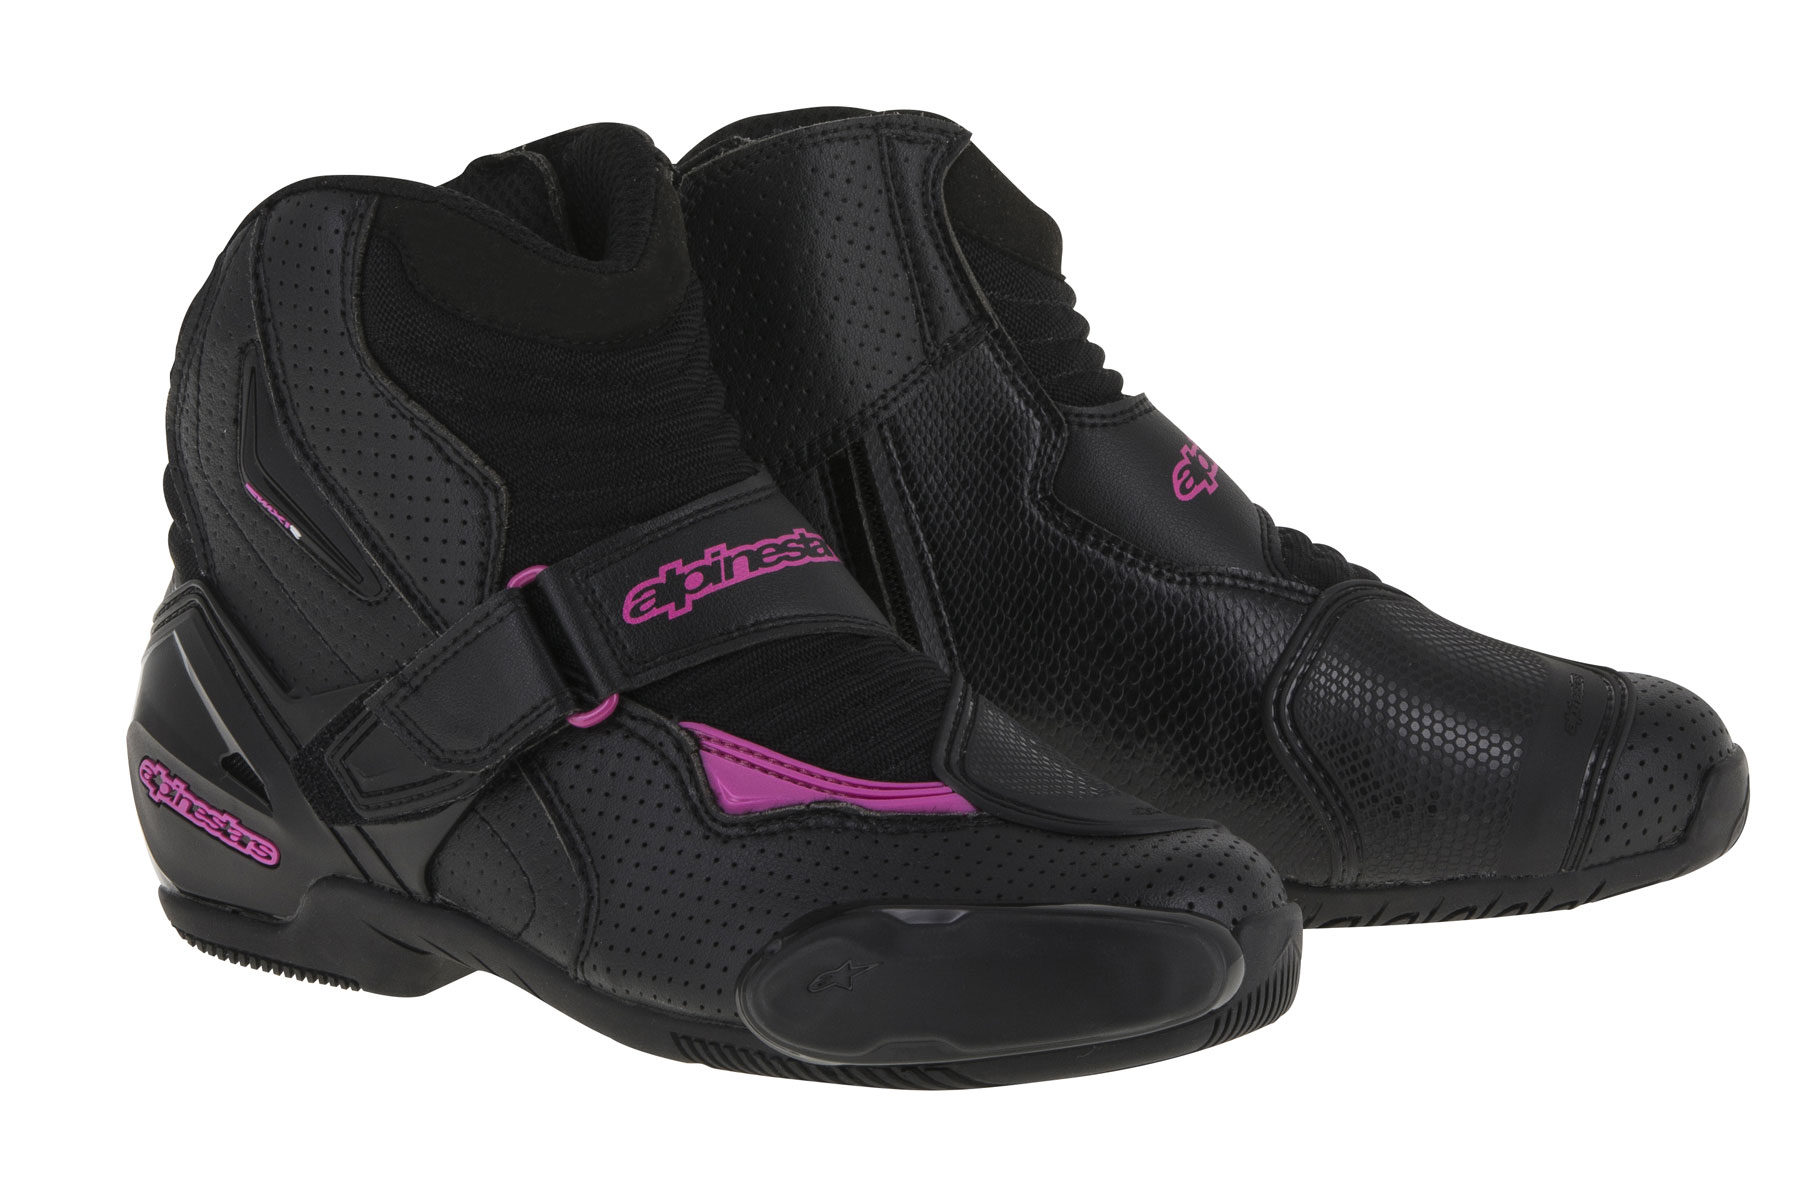 Alpinestars Stella SMX-1 R Vented Low-Cut Boots (Black/Pink)